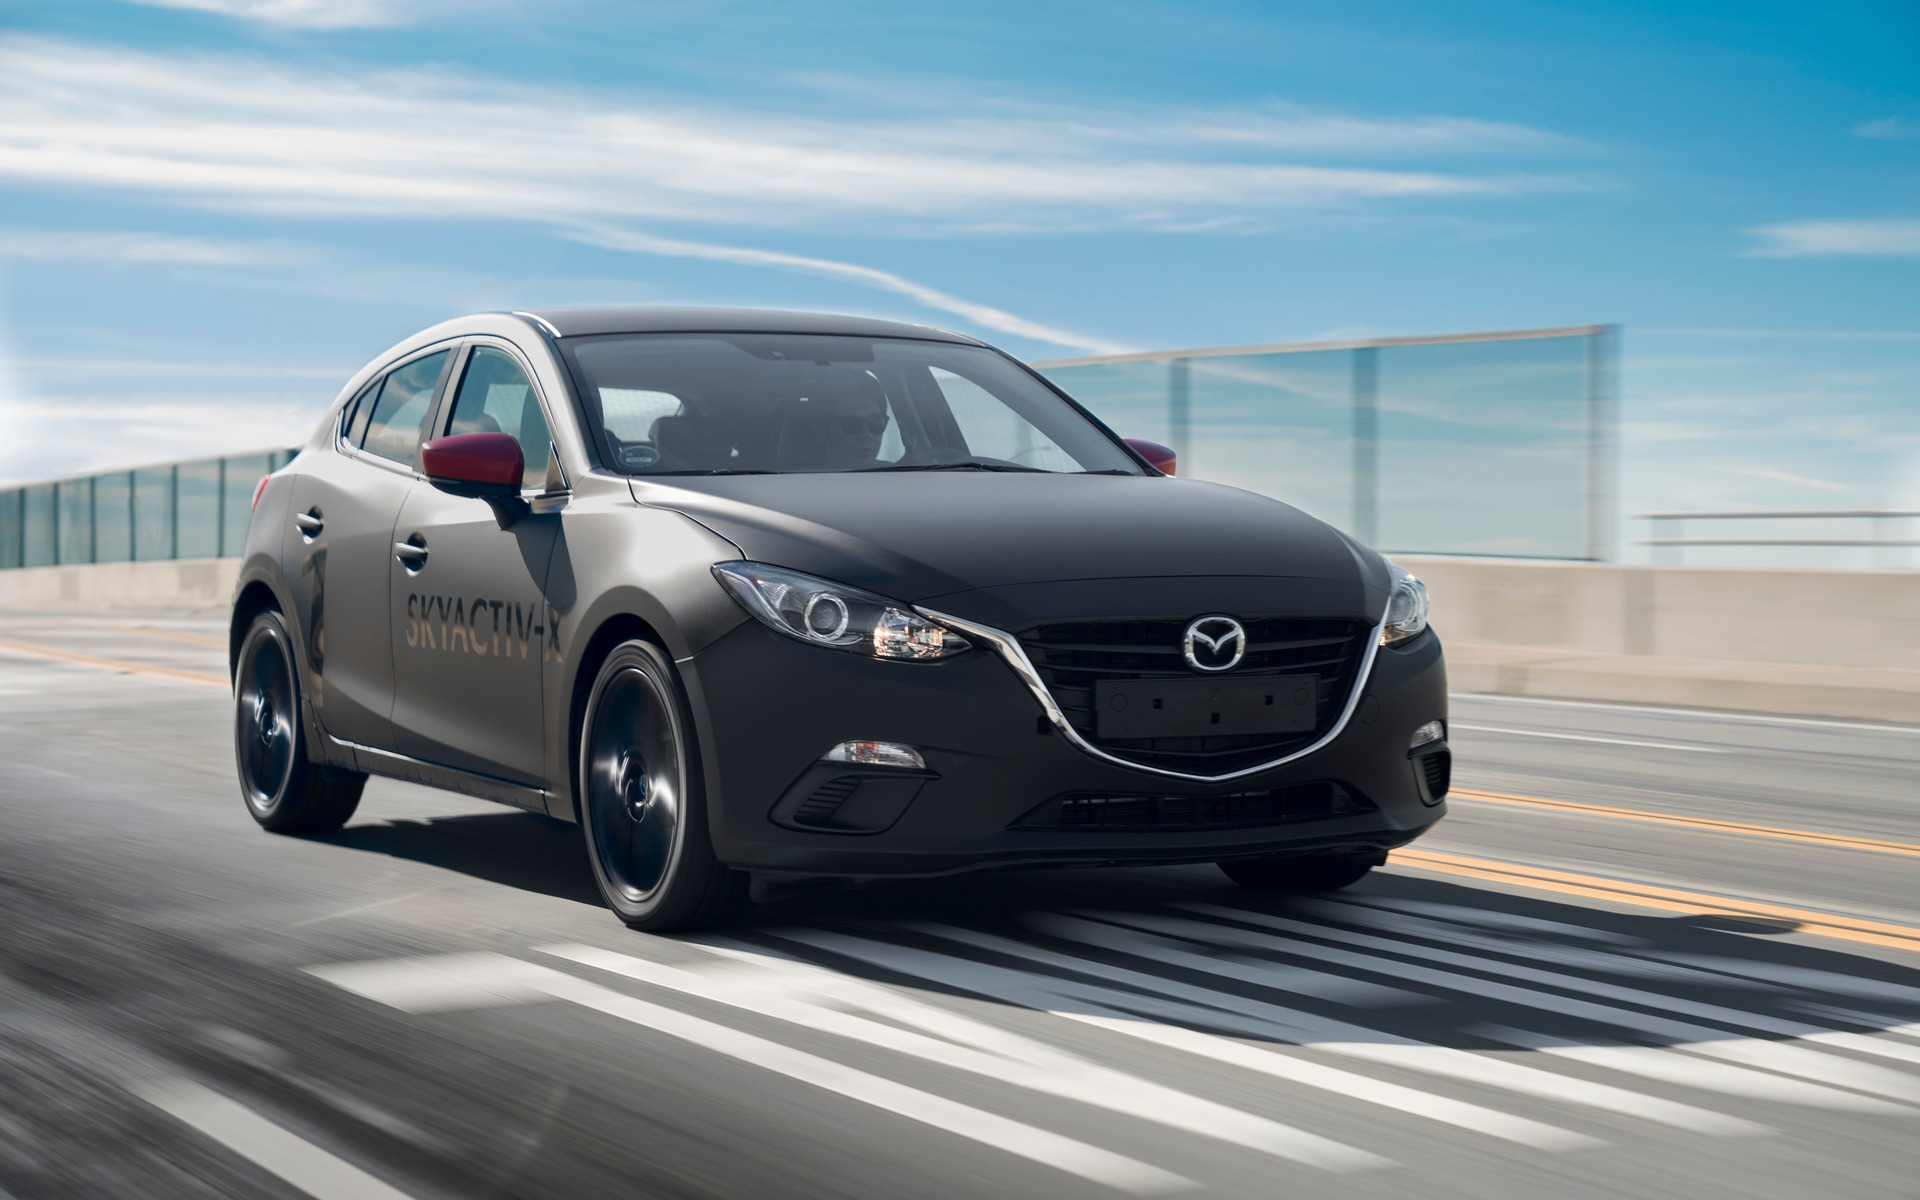 Mazda Skyactiv X The New Engine That Reduces Fuel Consumption By 15